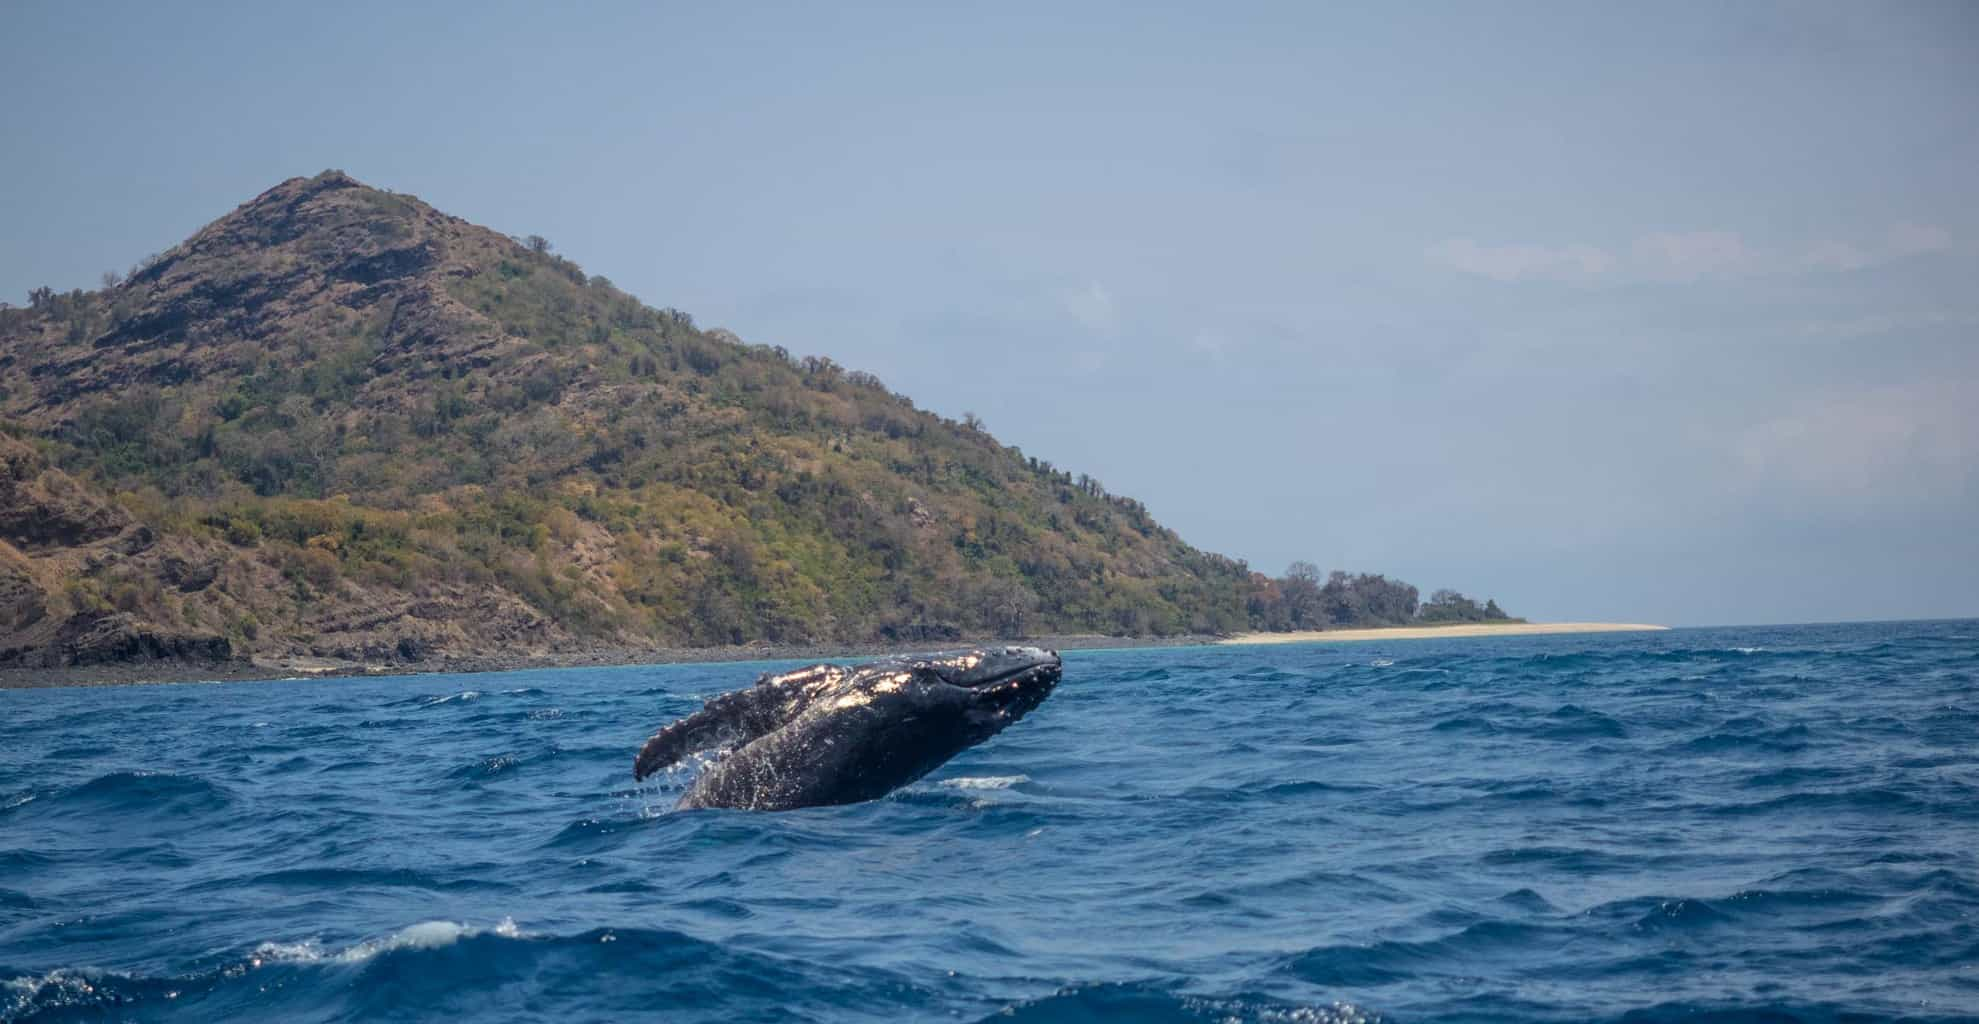 A jumping baby humpback whale